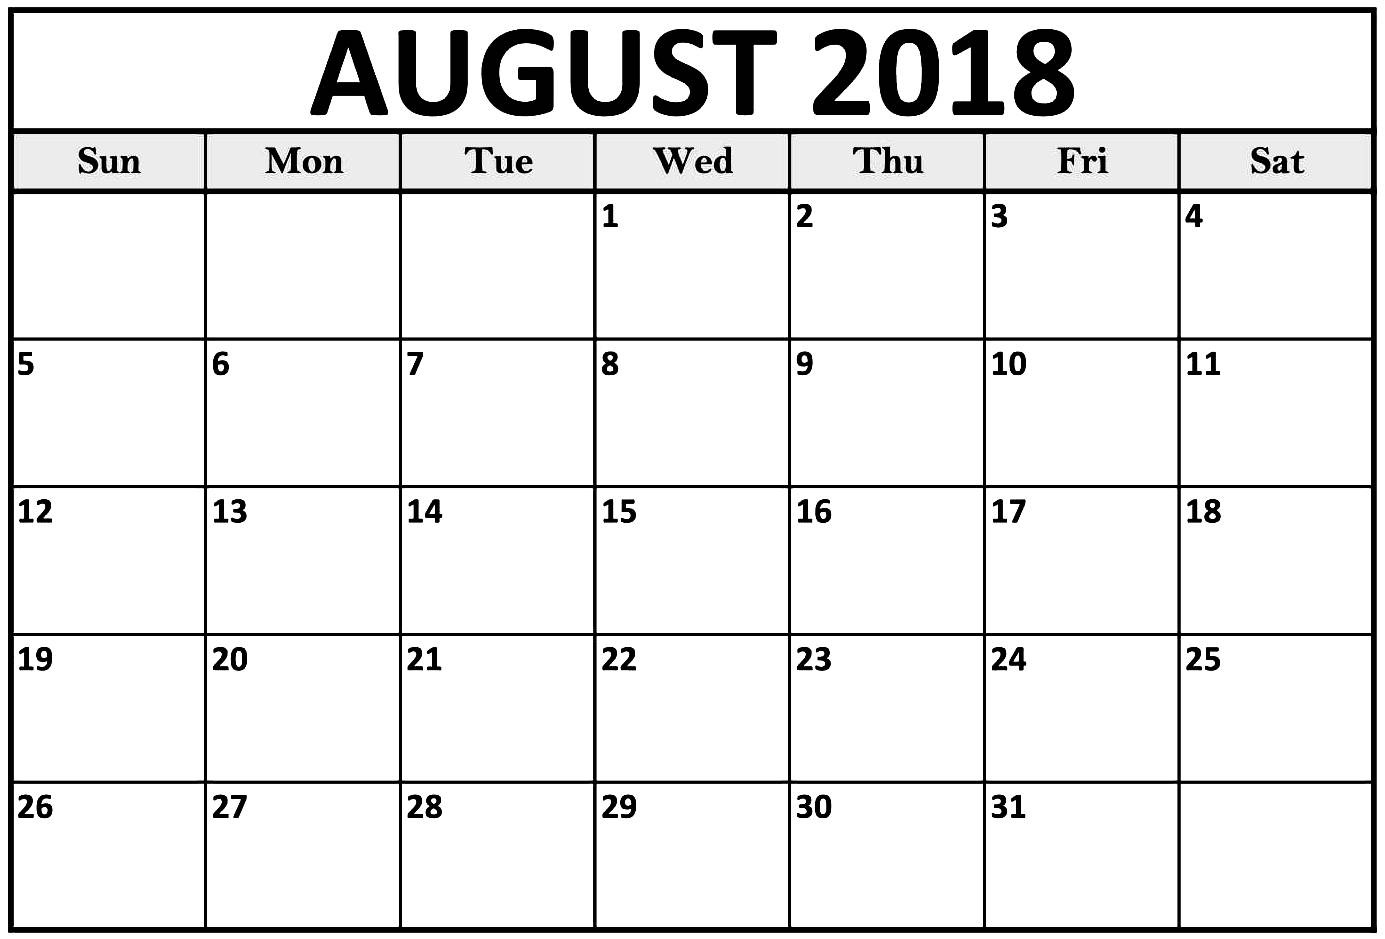 August 2018 Calendar Full Page – Template Calendar Design